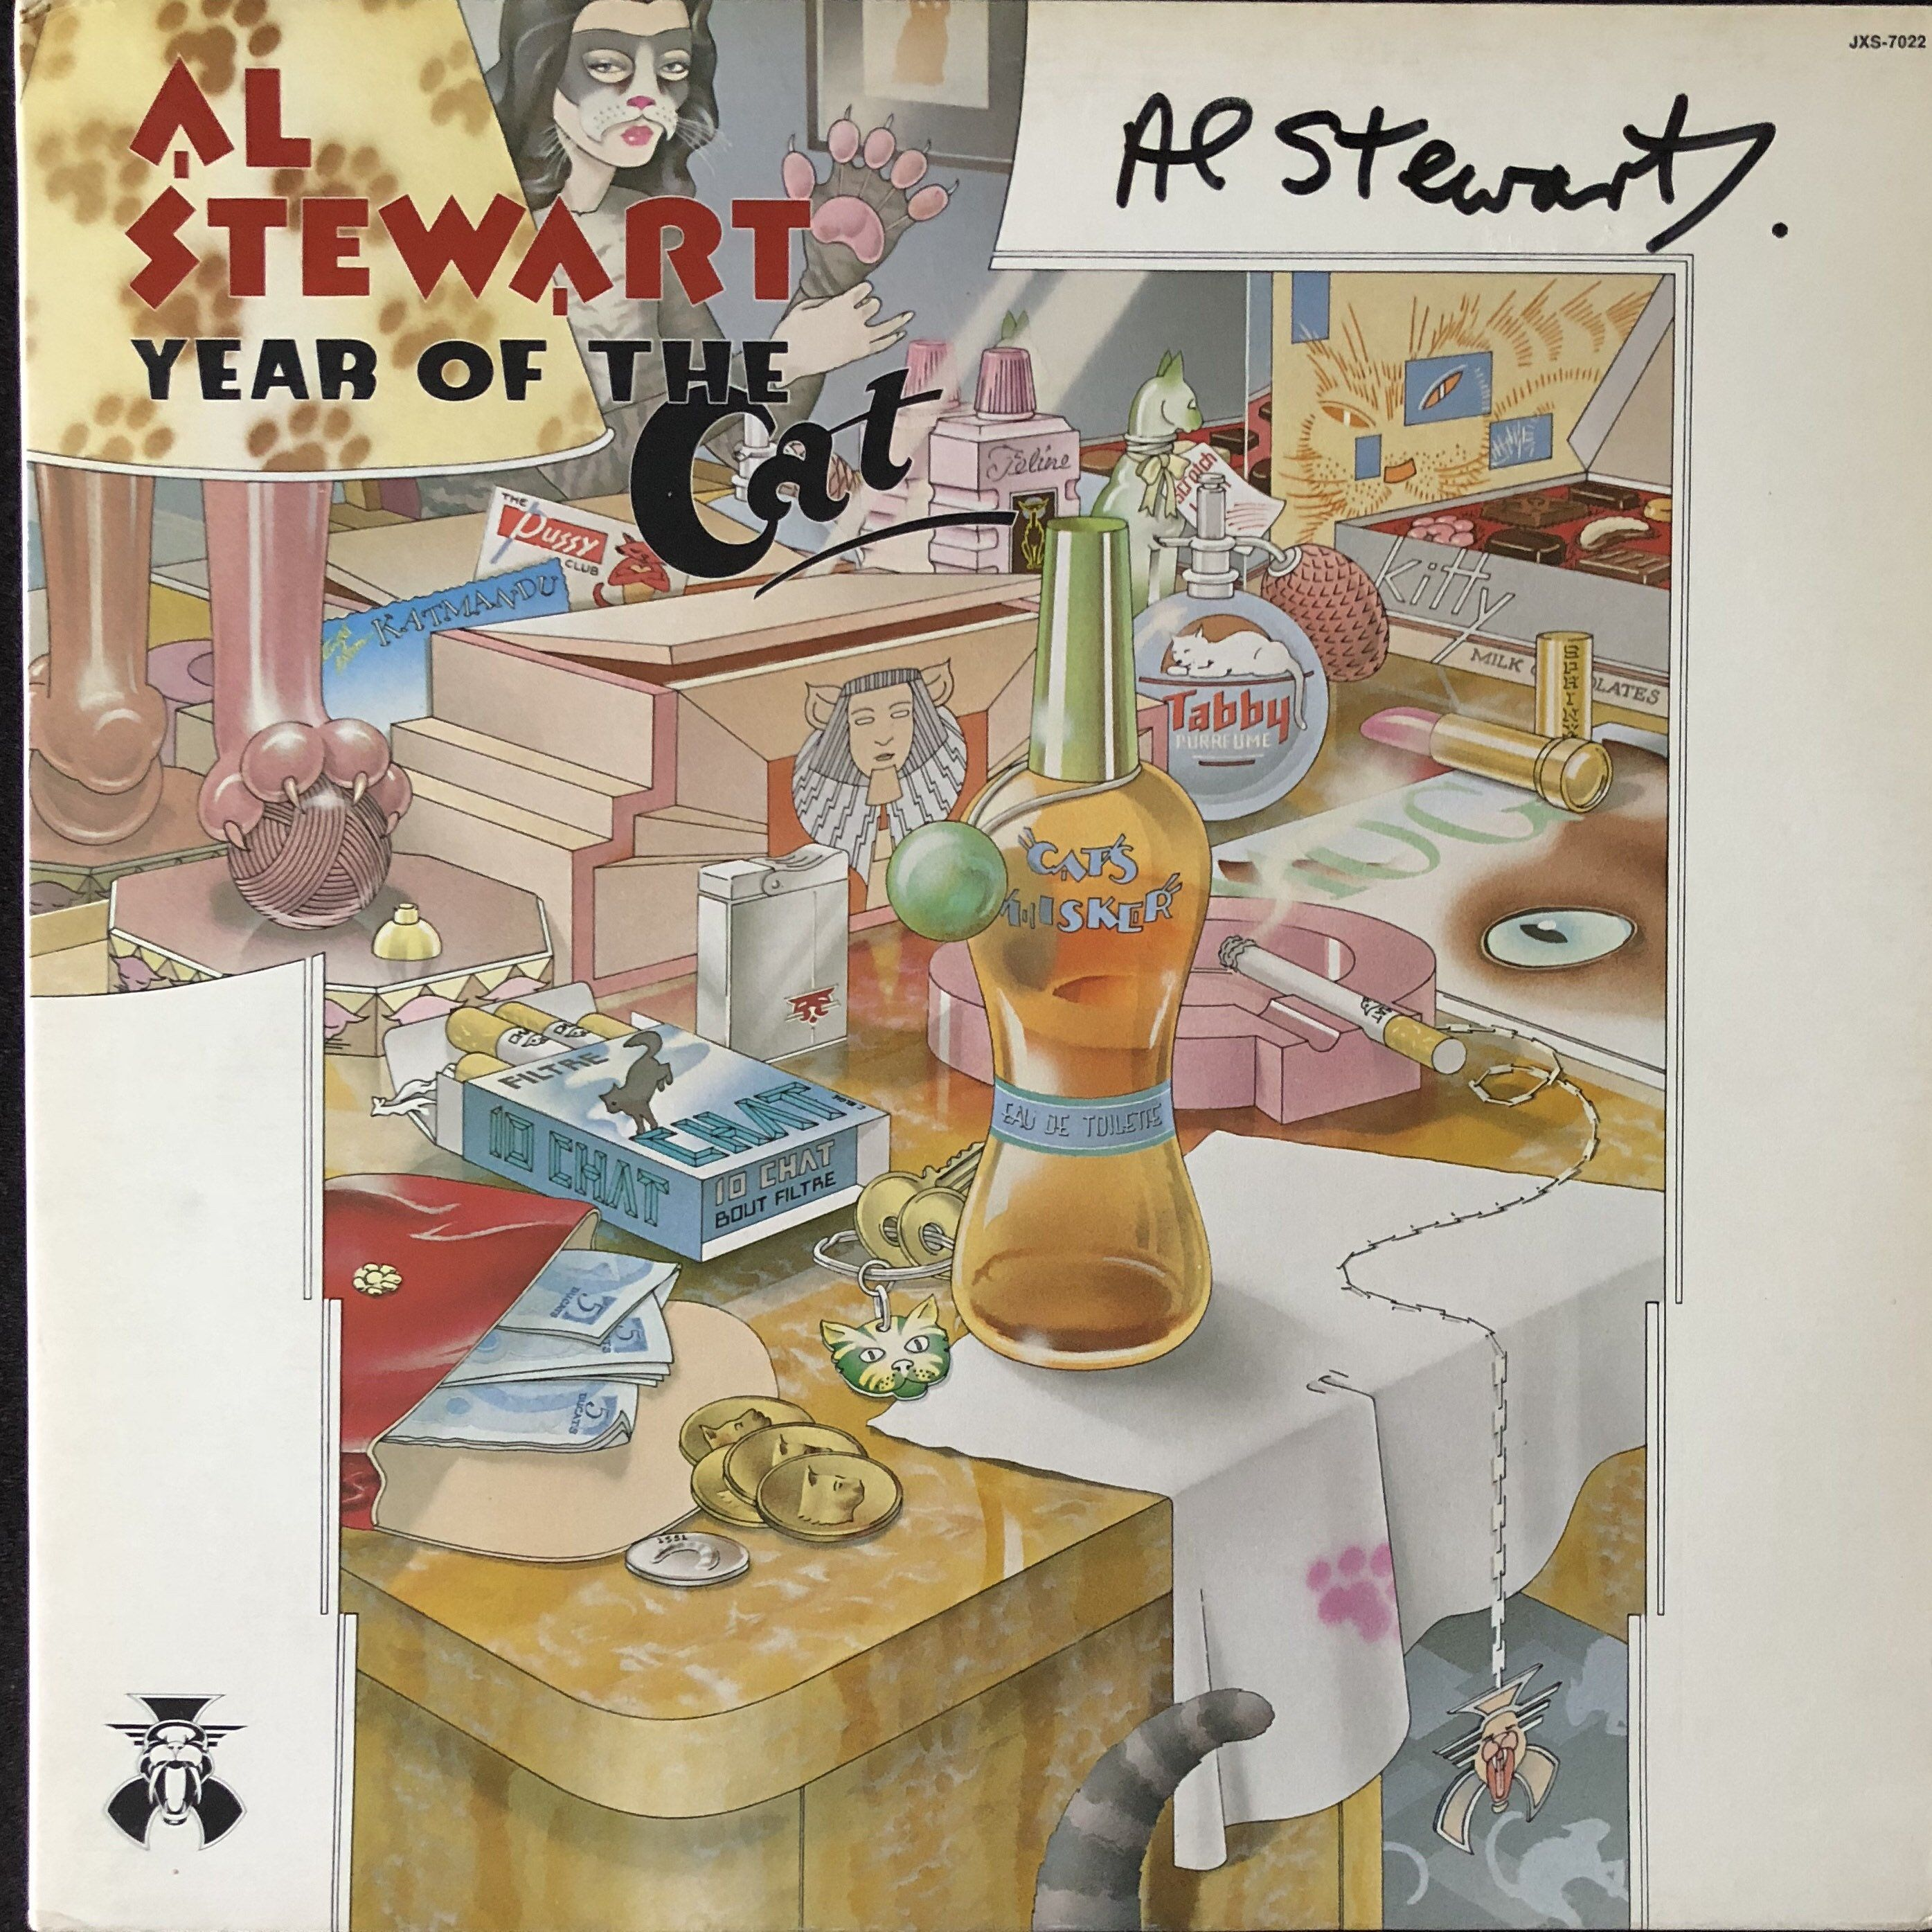 SIGNED Al Stewart Year of the Cat 1976 Hipgnosis Album